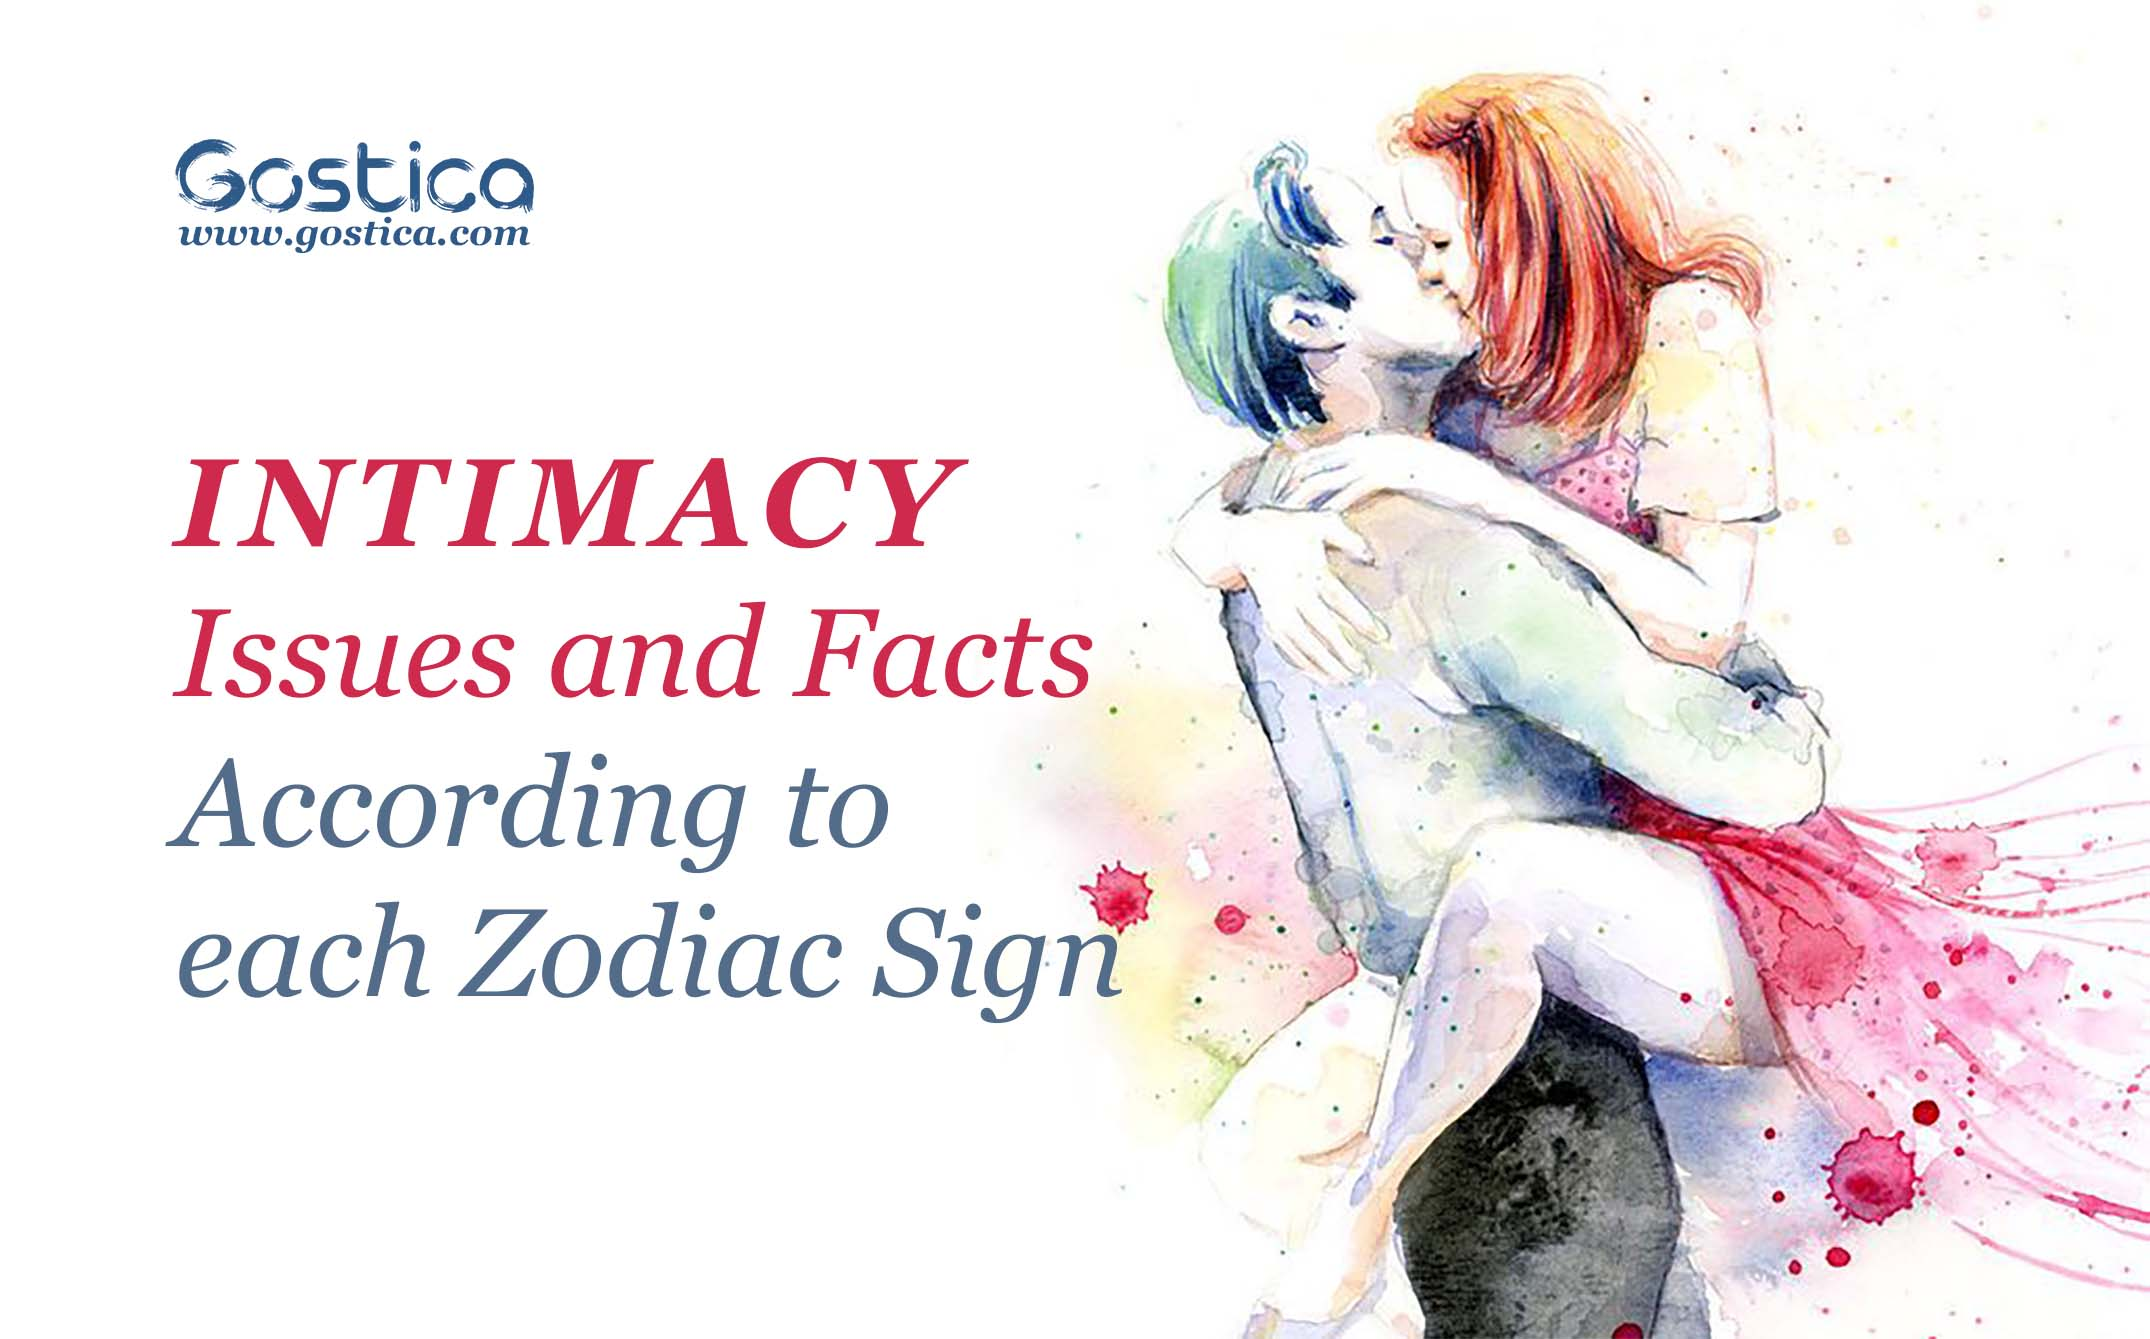 Intimacy-Issues-and-Facts-according-to-each-Zodiac-Sign.jpg